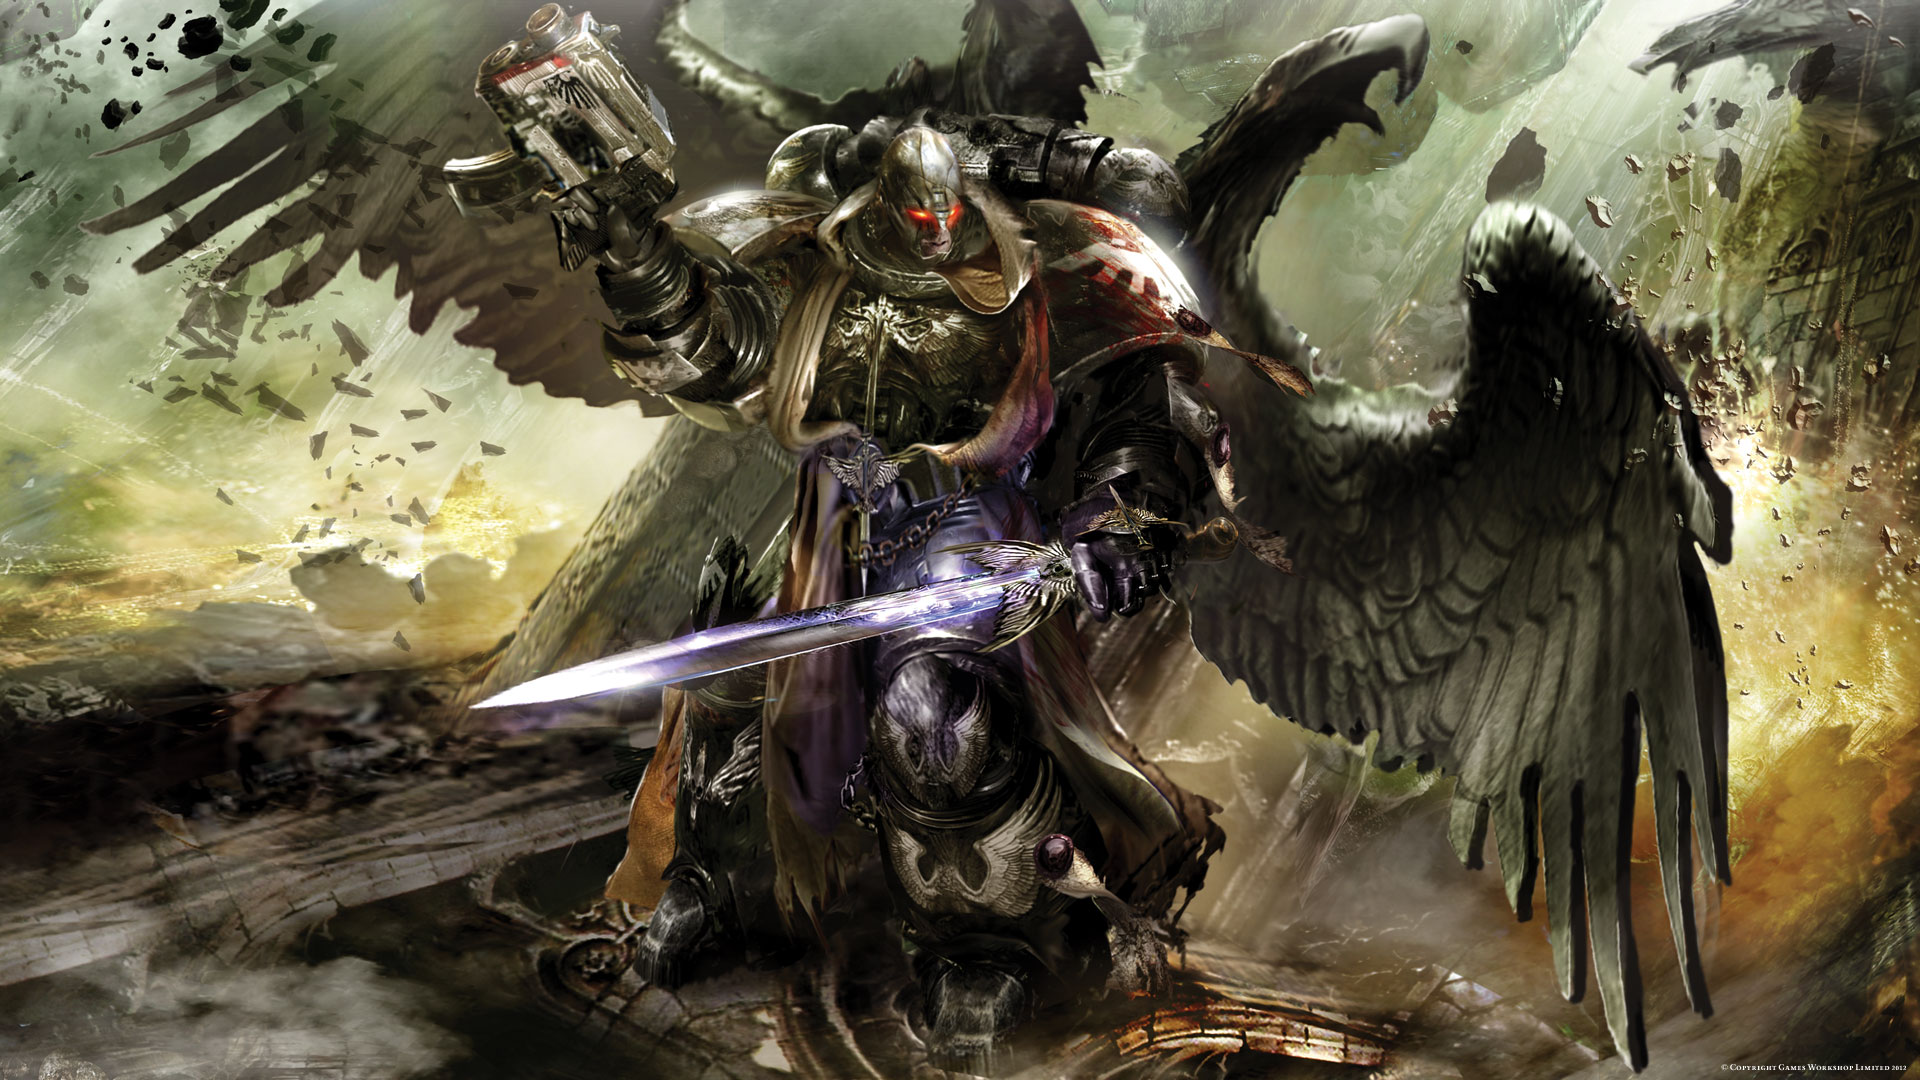 Warhammer clipart 1080p You Get 40K Get you